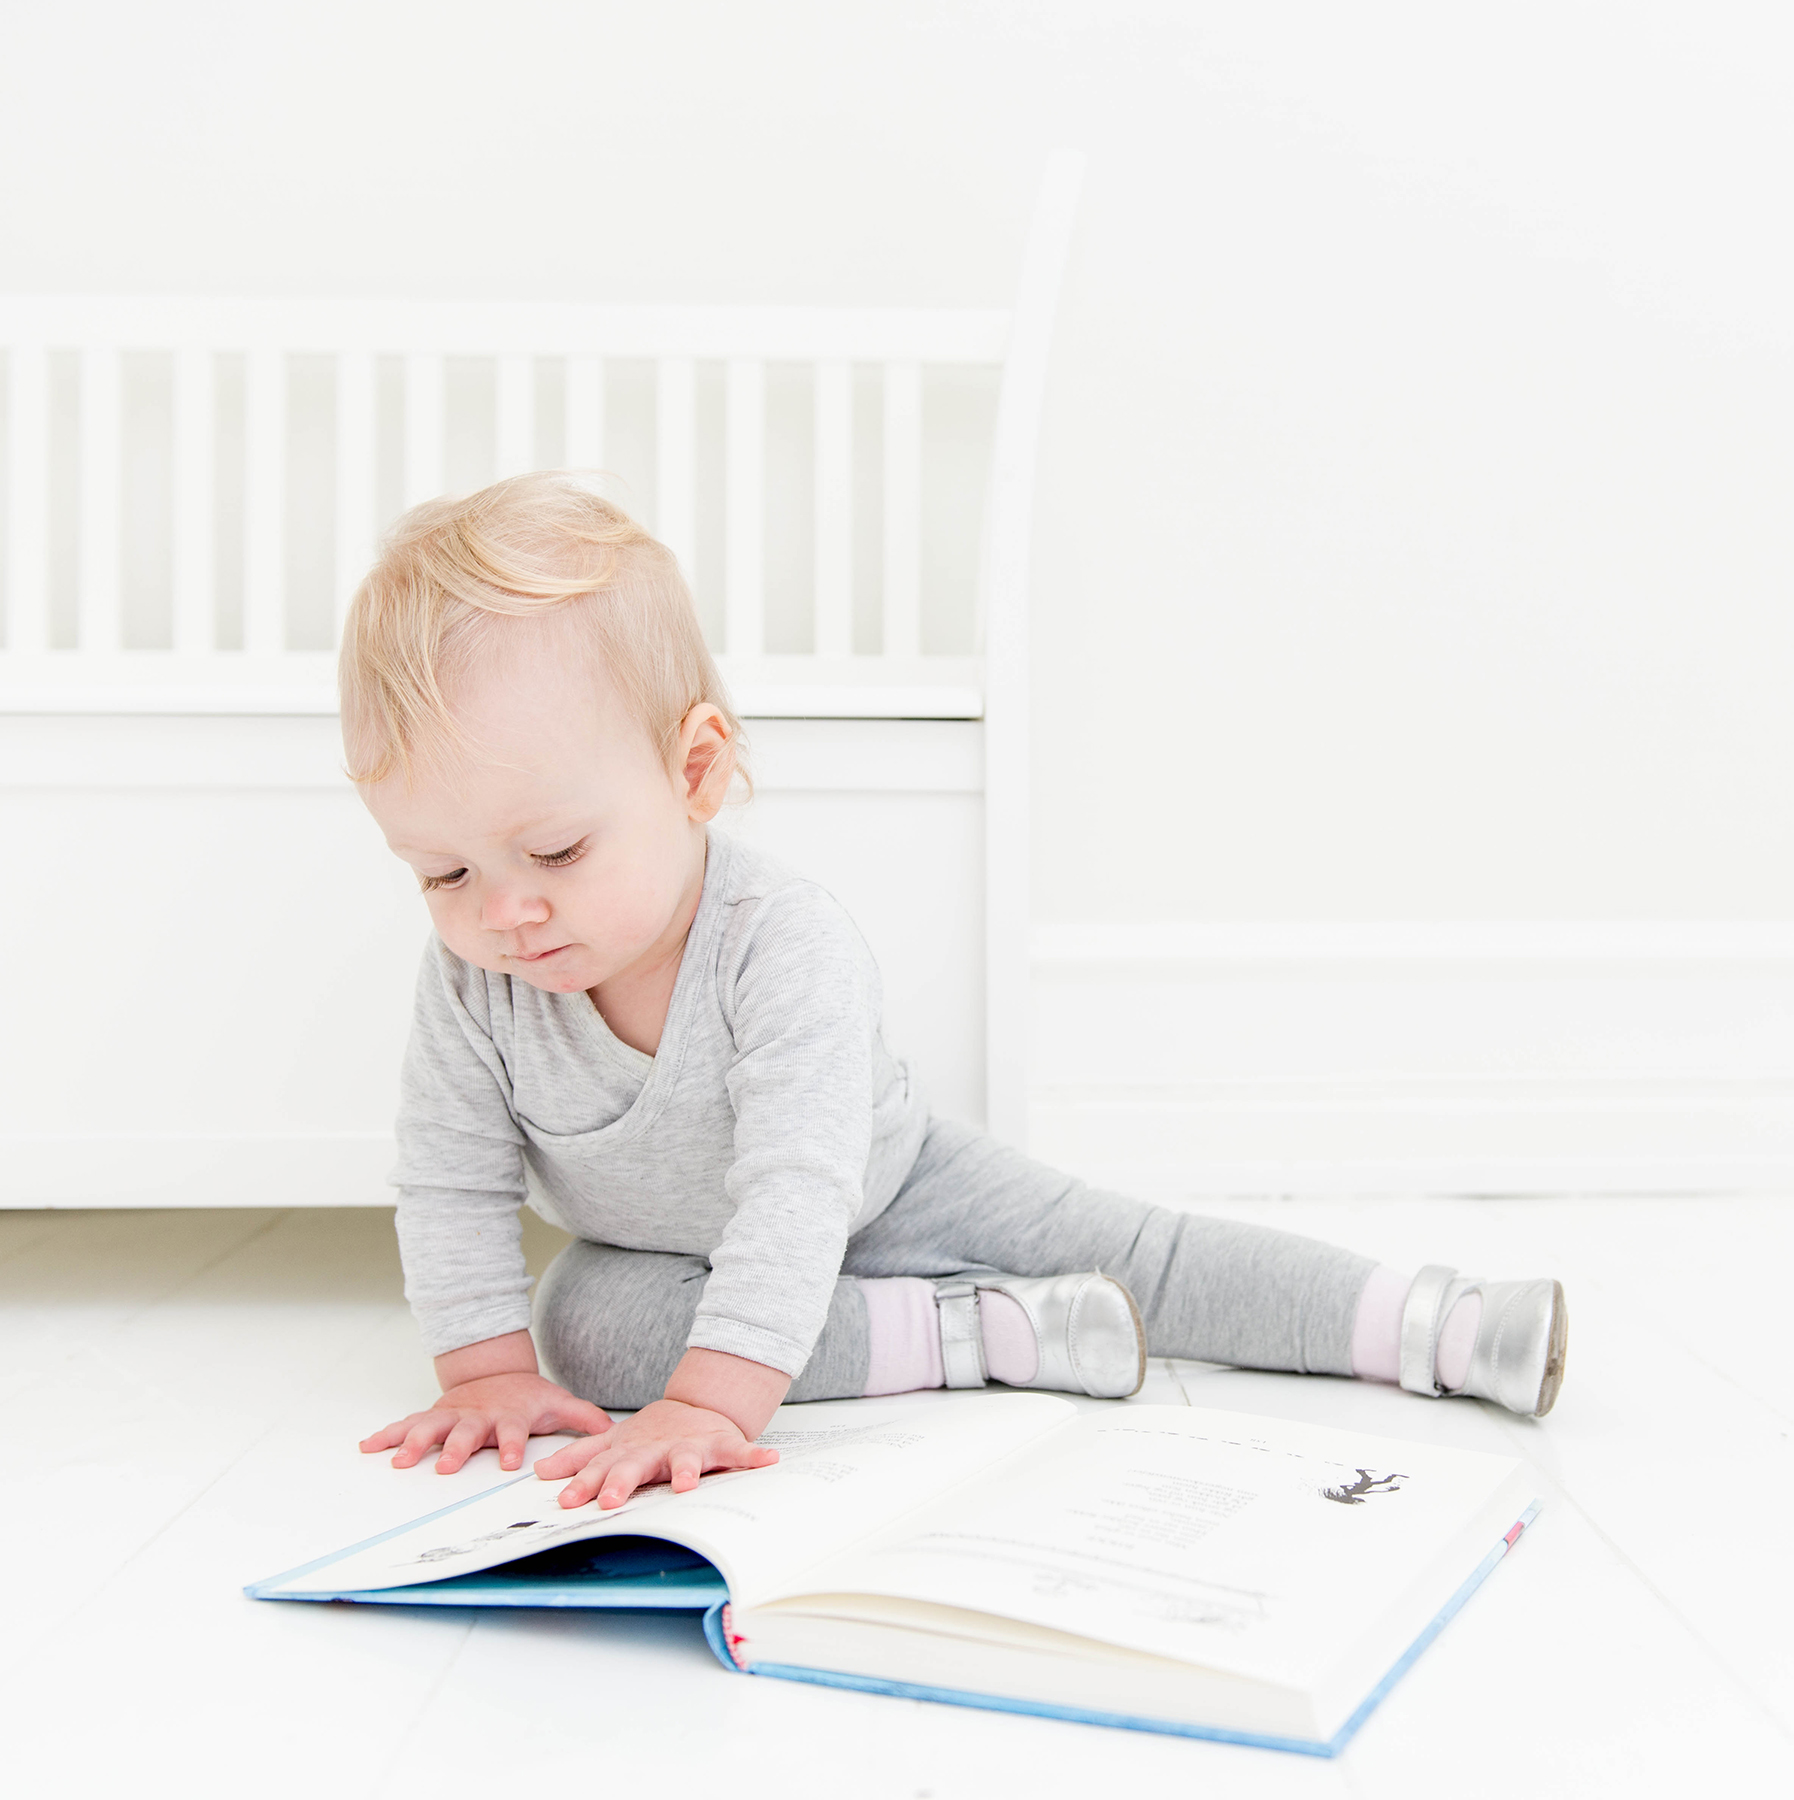 Baby looking at large book